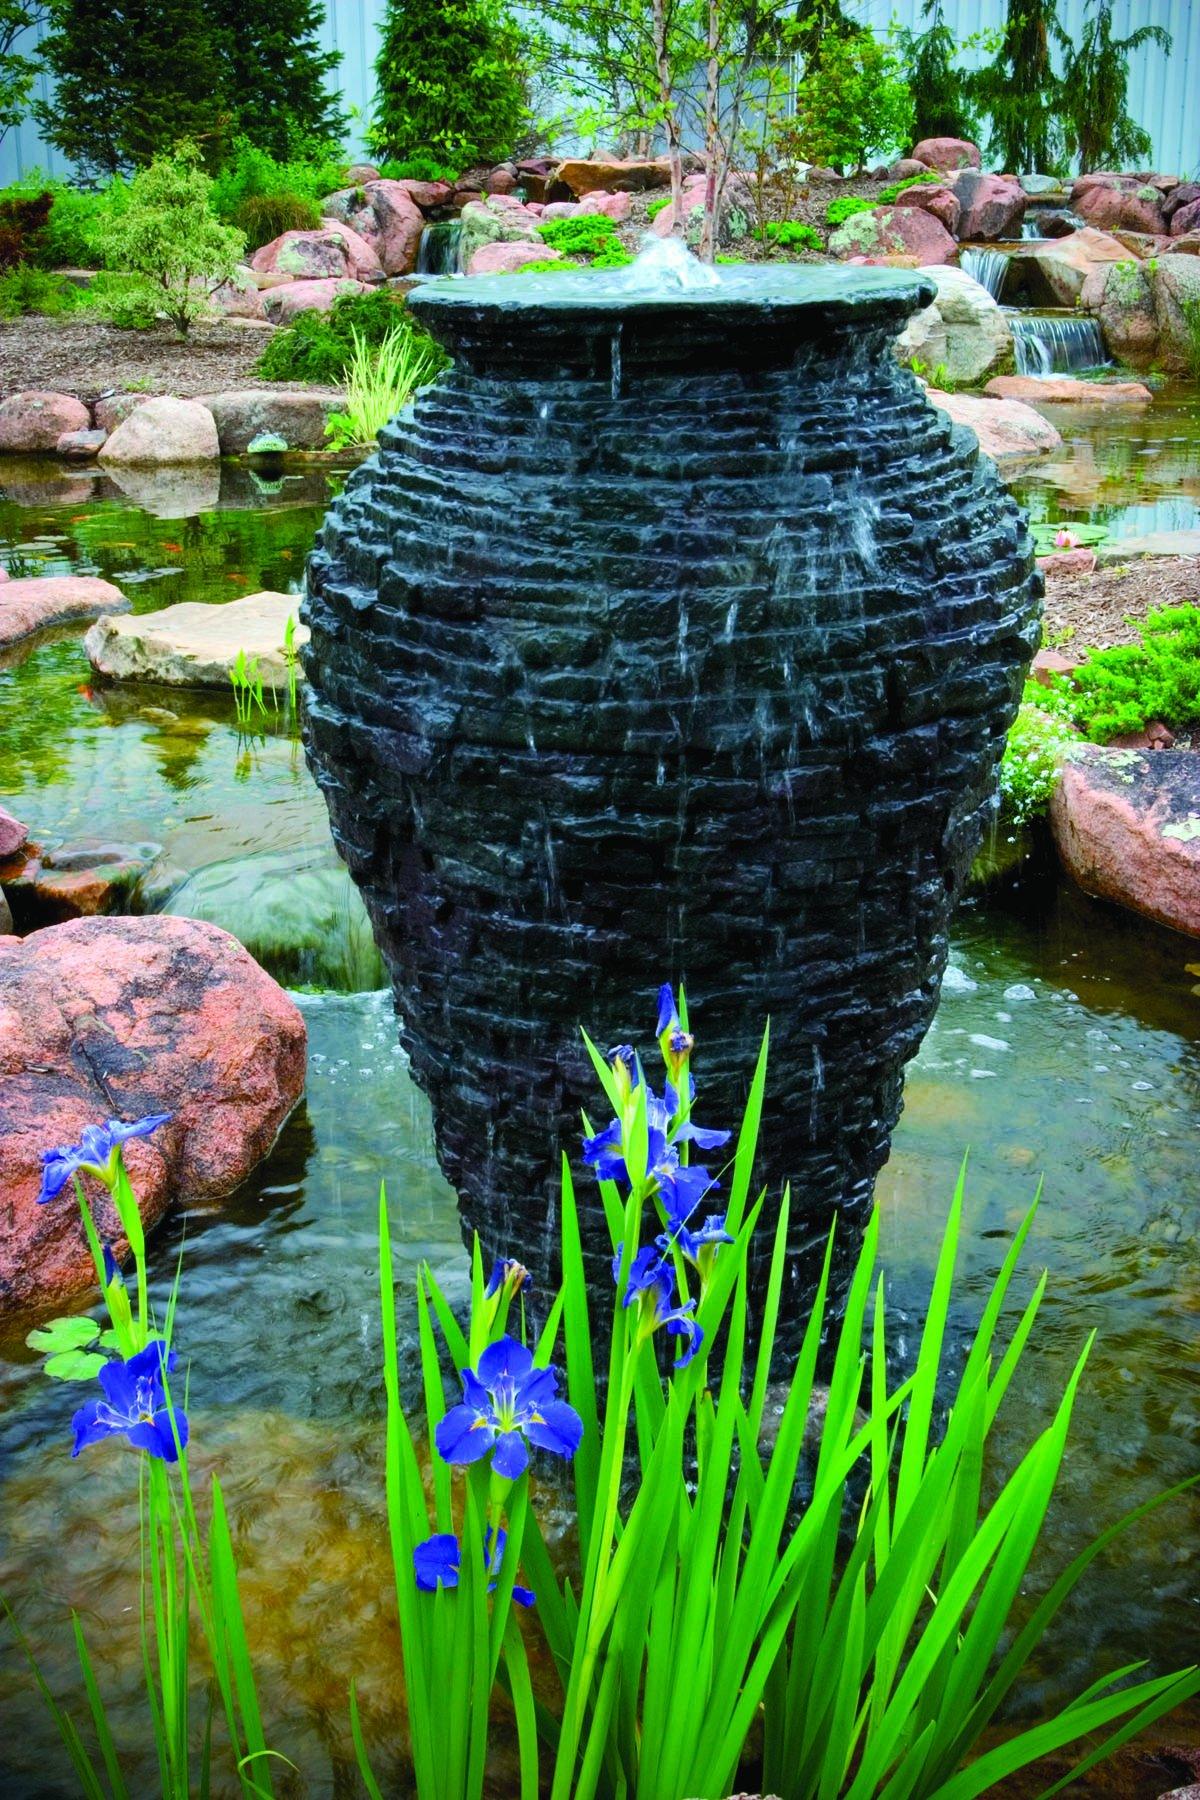 Aquascape 98940 Large Stacked Slate Urn Fountain for Landscape and Gardens, 56-1/2 Inches Tall by Aquascape